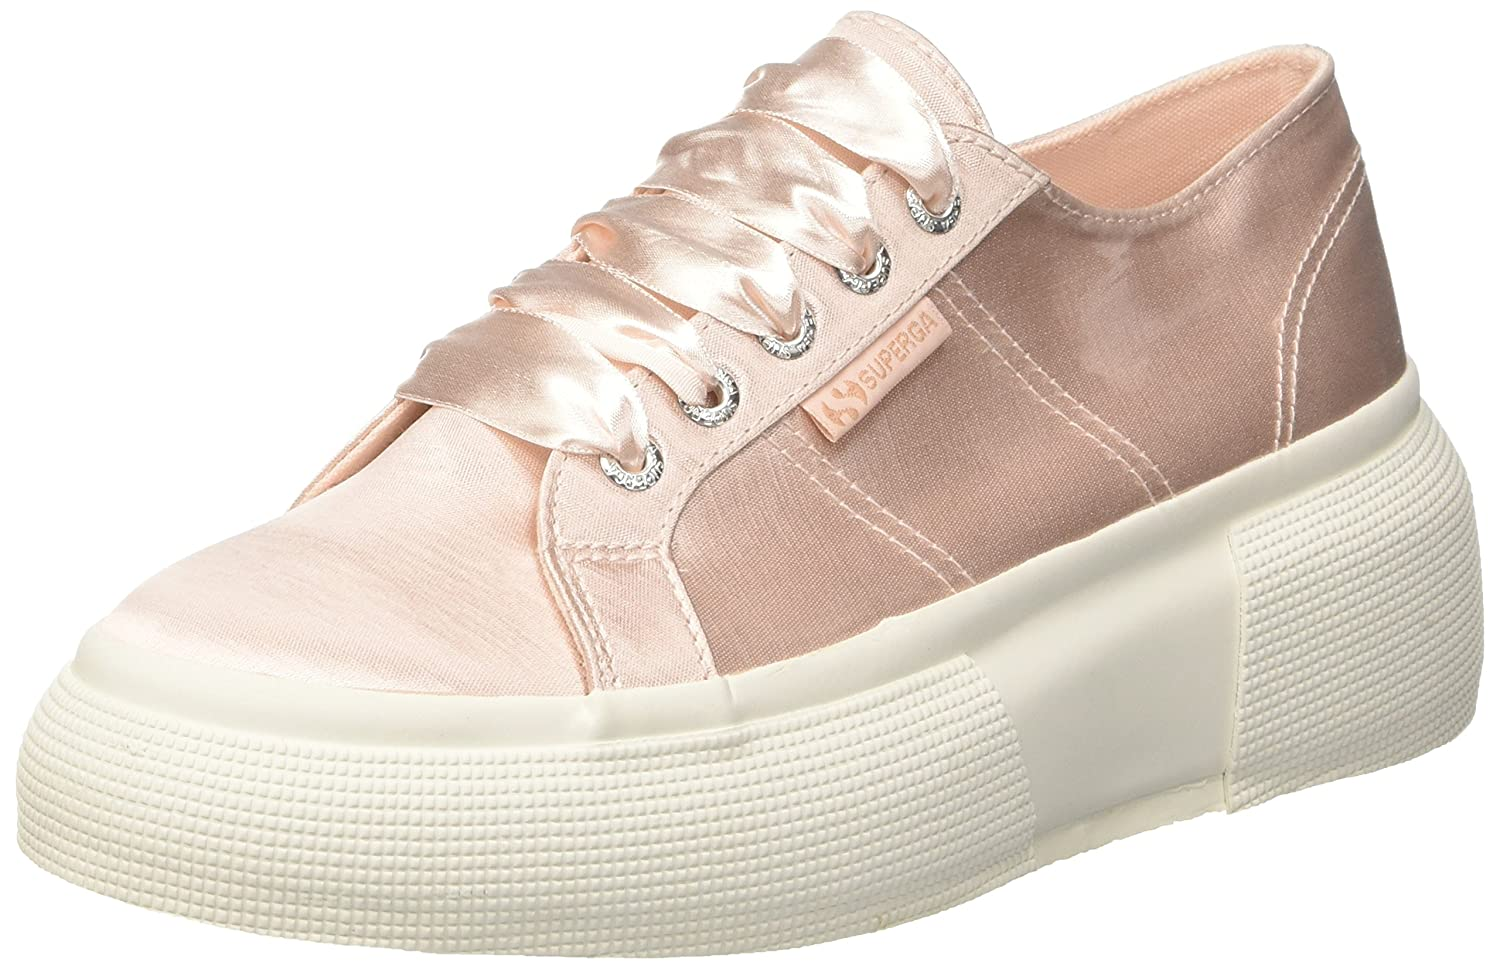 Superga 19997 2287-Satinw, Baskets Femme Femme (Rose Rose (Rose 914) 49554a3 - digitalweb.space